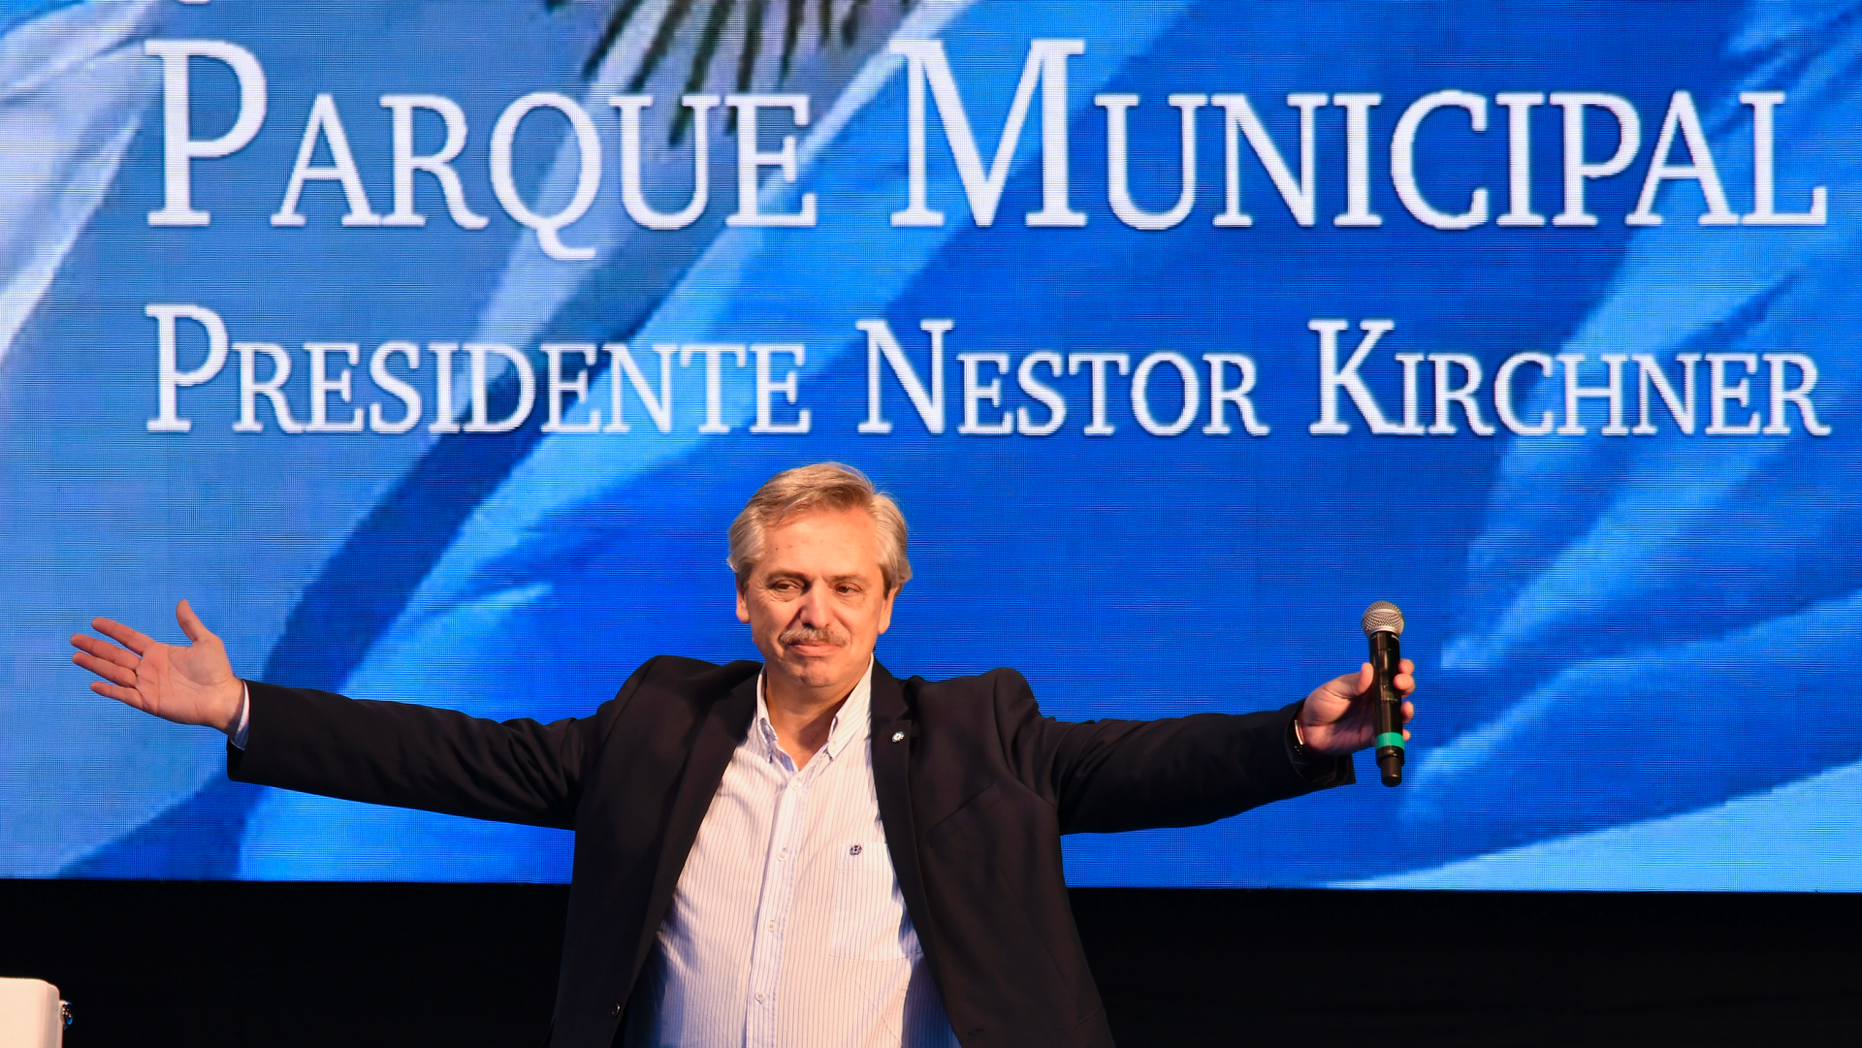 FILE - In this May 25, 2019 file photo, Argentine presidential candidate Alberto Fernandez acknowledges the audience during a campaign rally in Buenos Aires, Argentina. On Monday, June 3, 2019, Fernandez checked himself into the hospital for tests following a persistent cough. (AP Photo/Gustavo Garello, File)